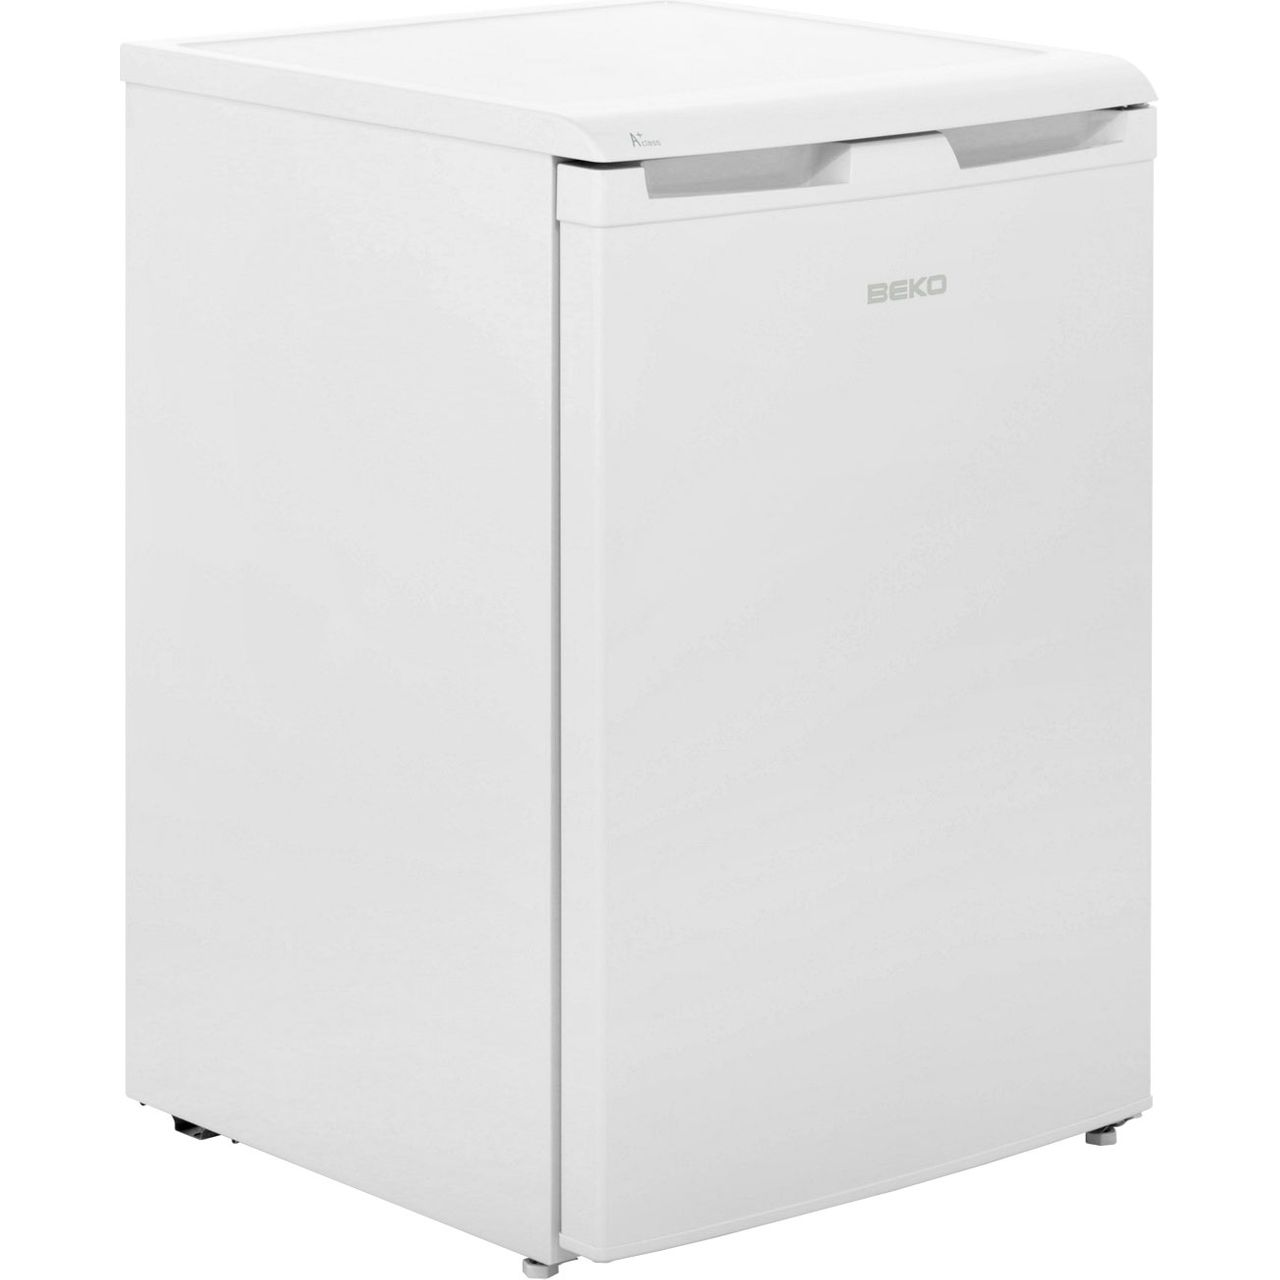 Online Fridge Beko Larder Fridge Shop For Cheap Fridges And Save Online